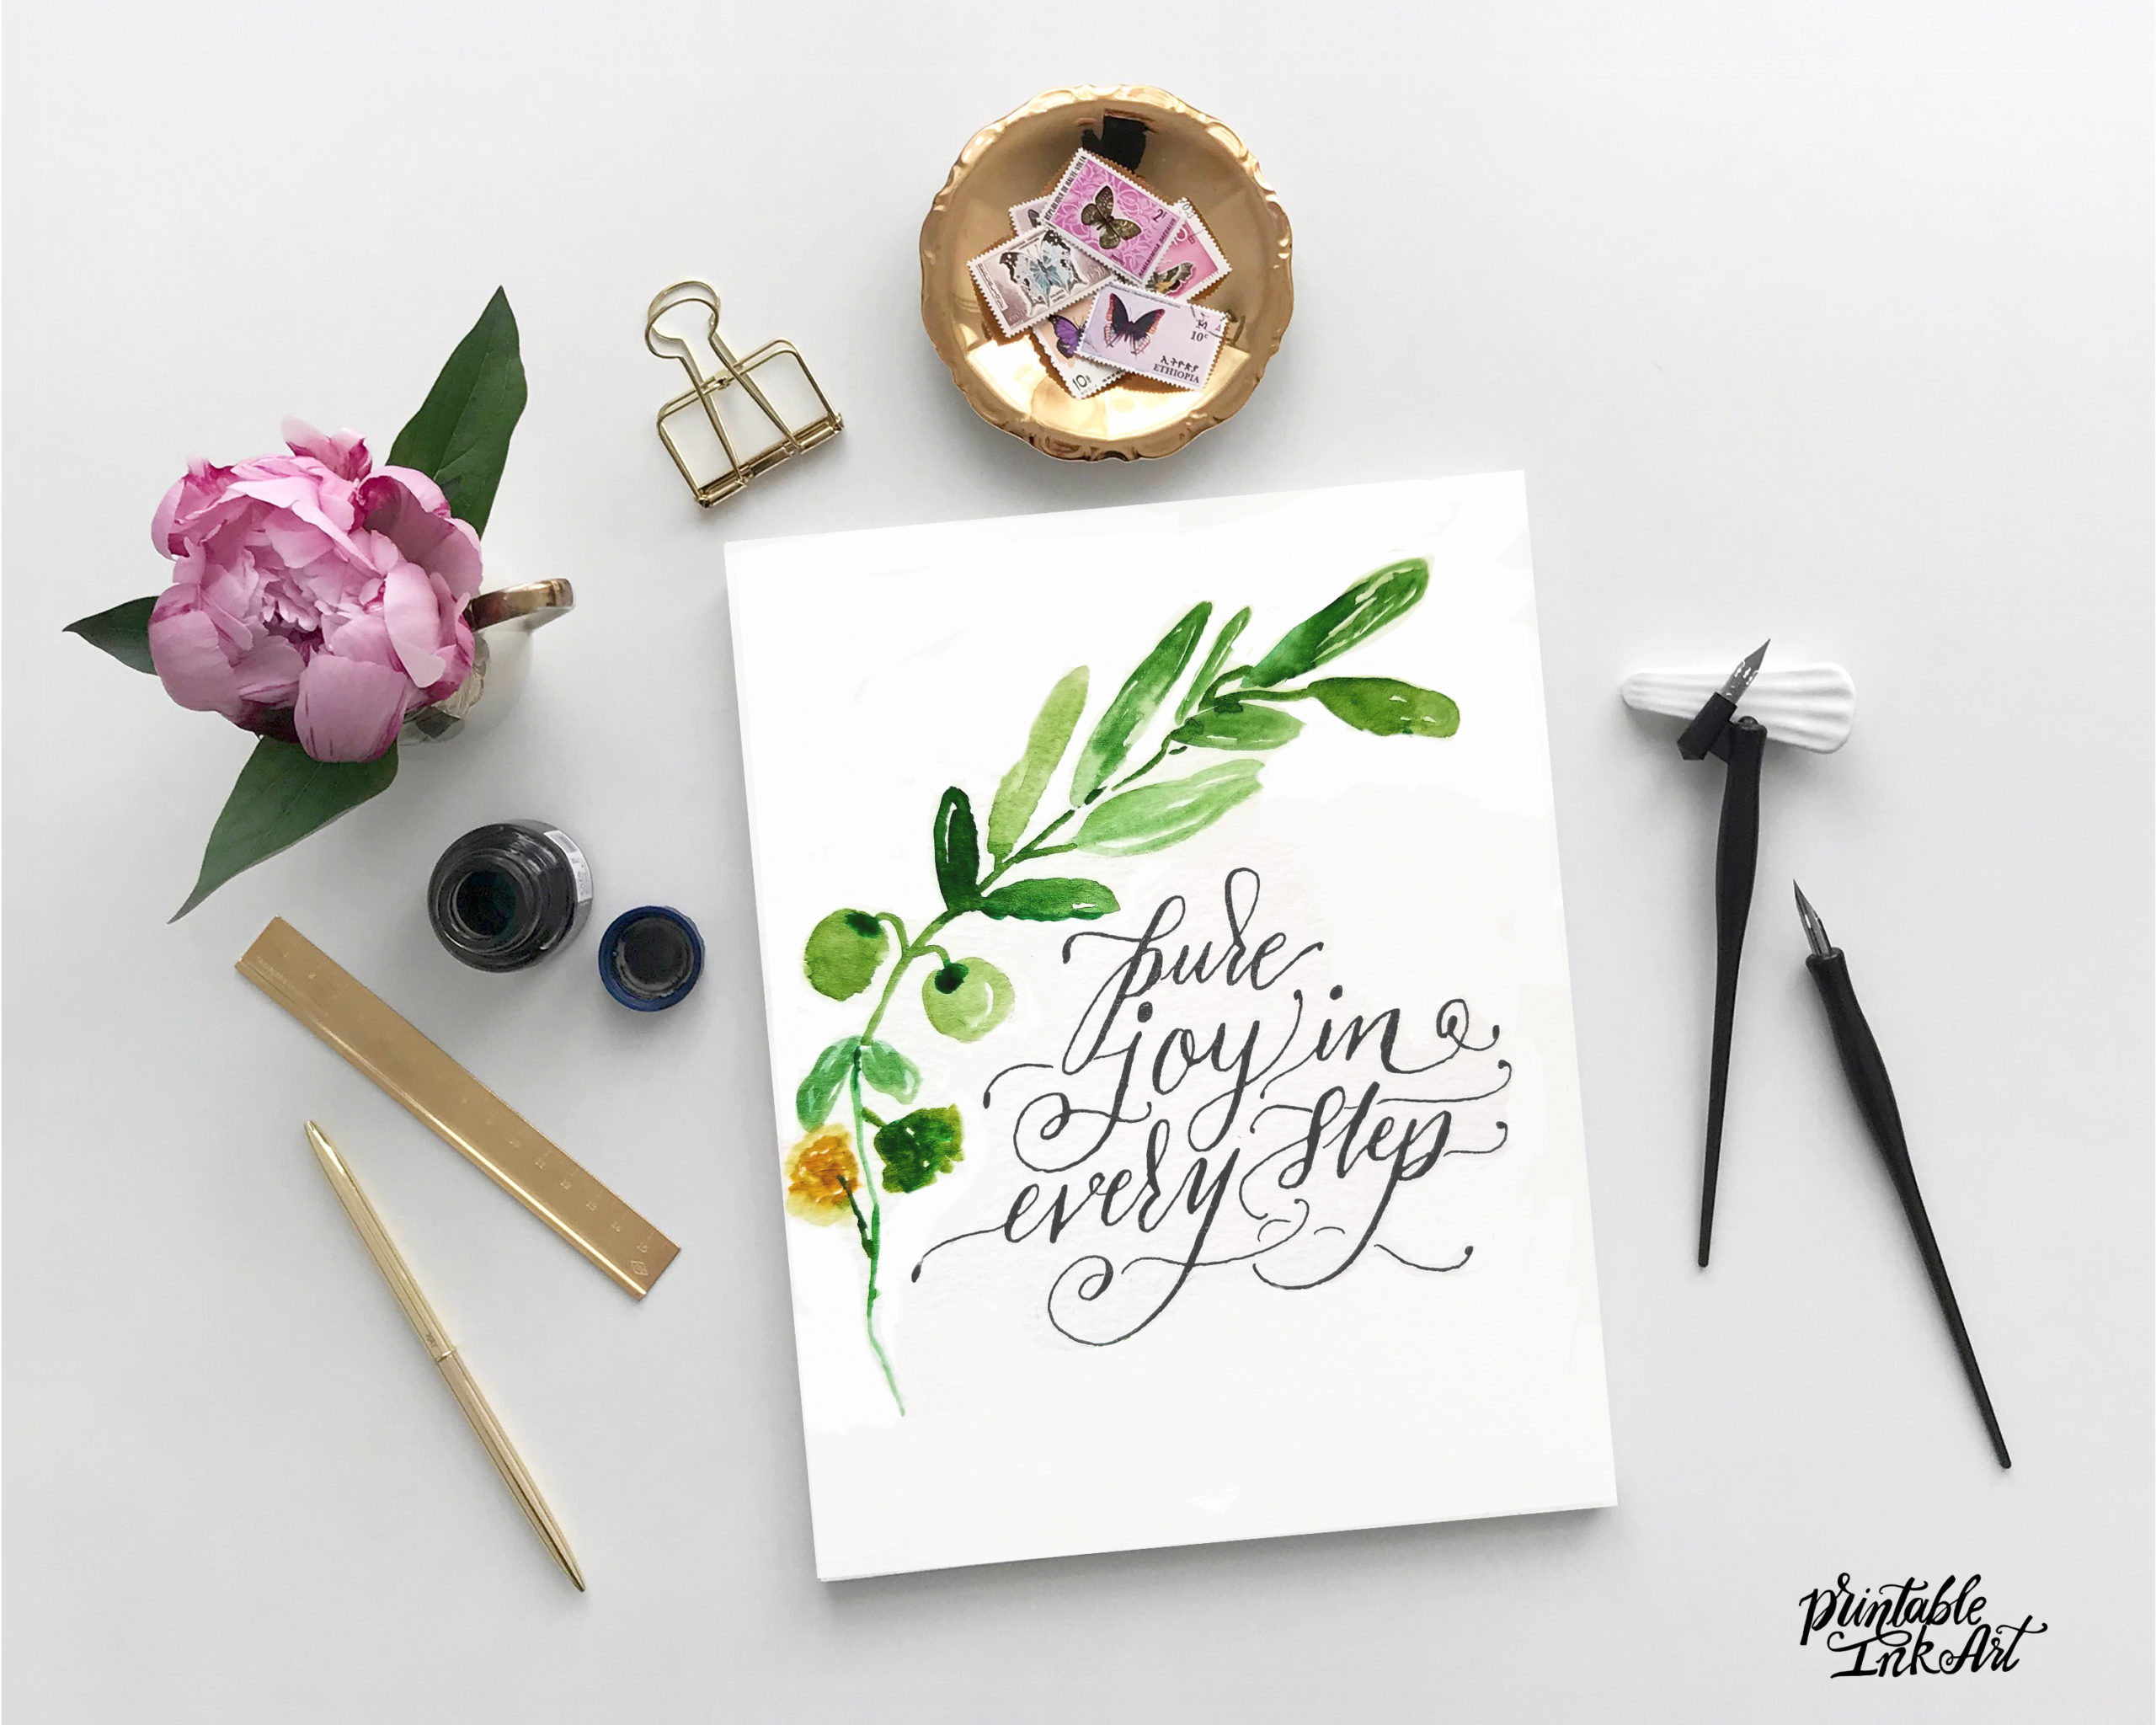 Watercolors + Calligraphy Workshop